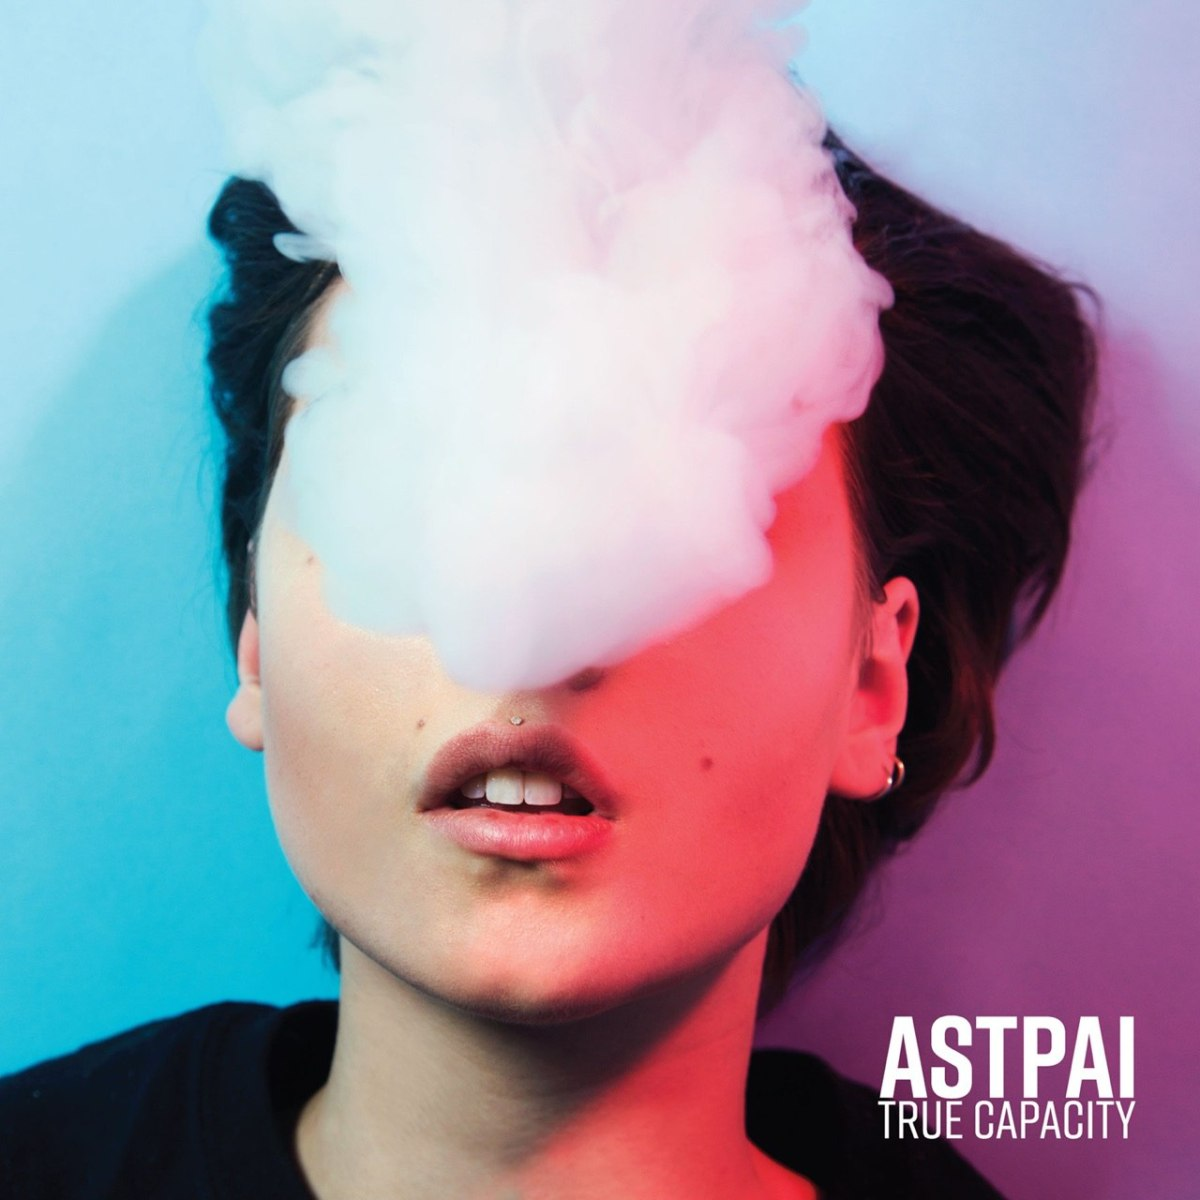 Album Review: Astpai – True Capacity